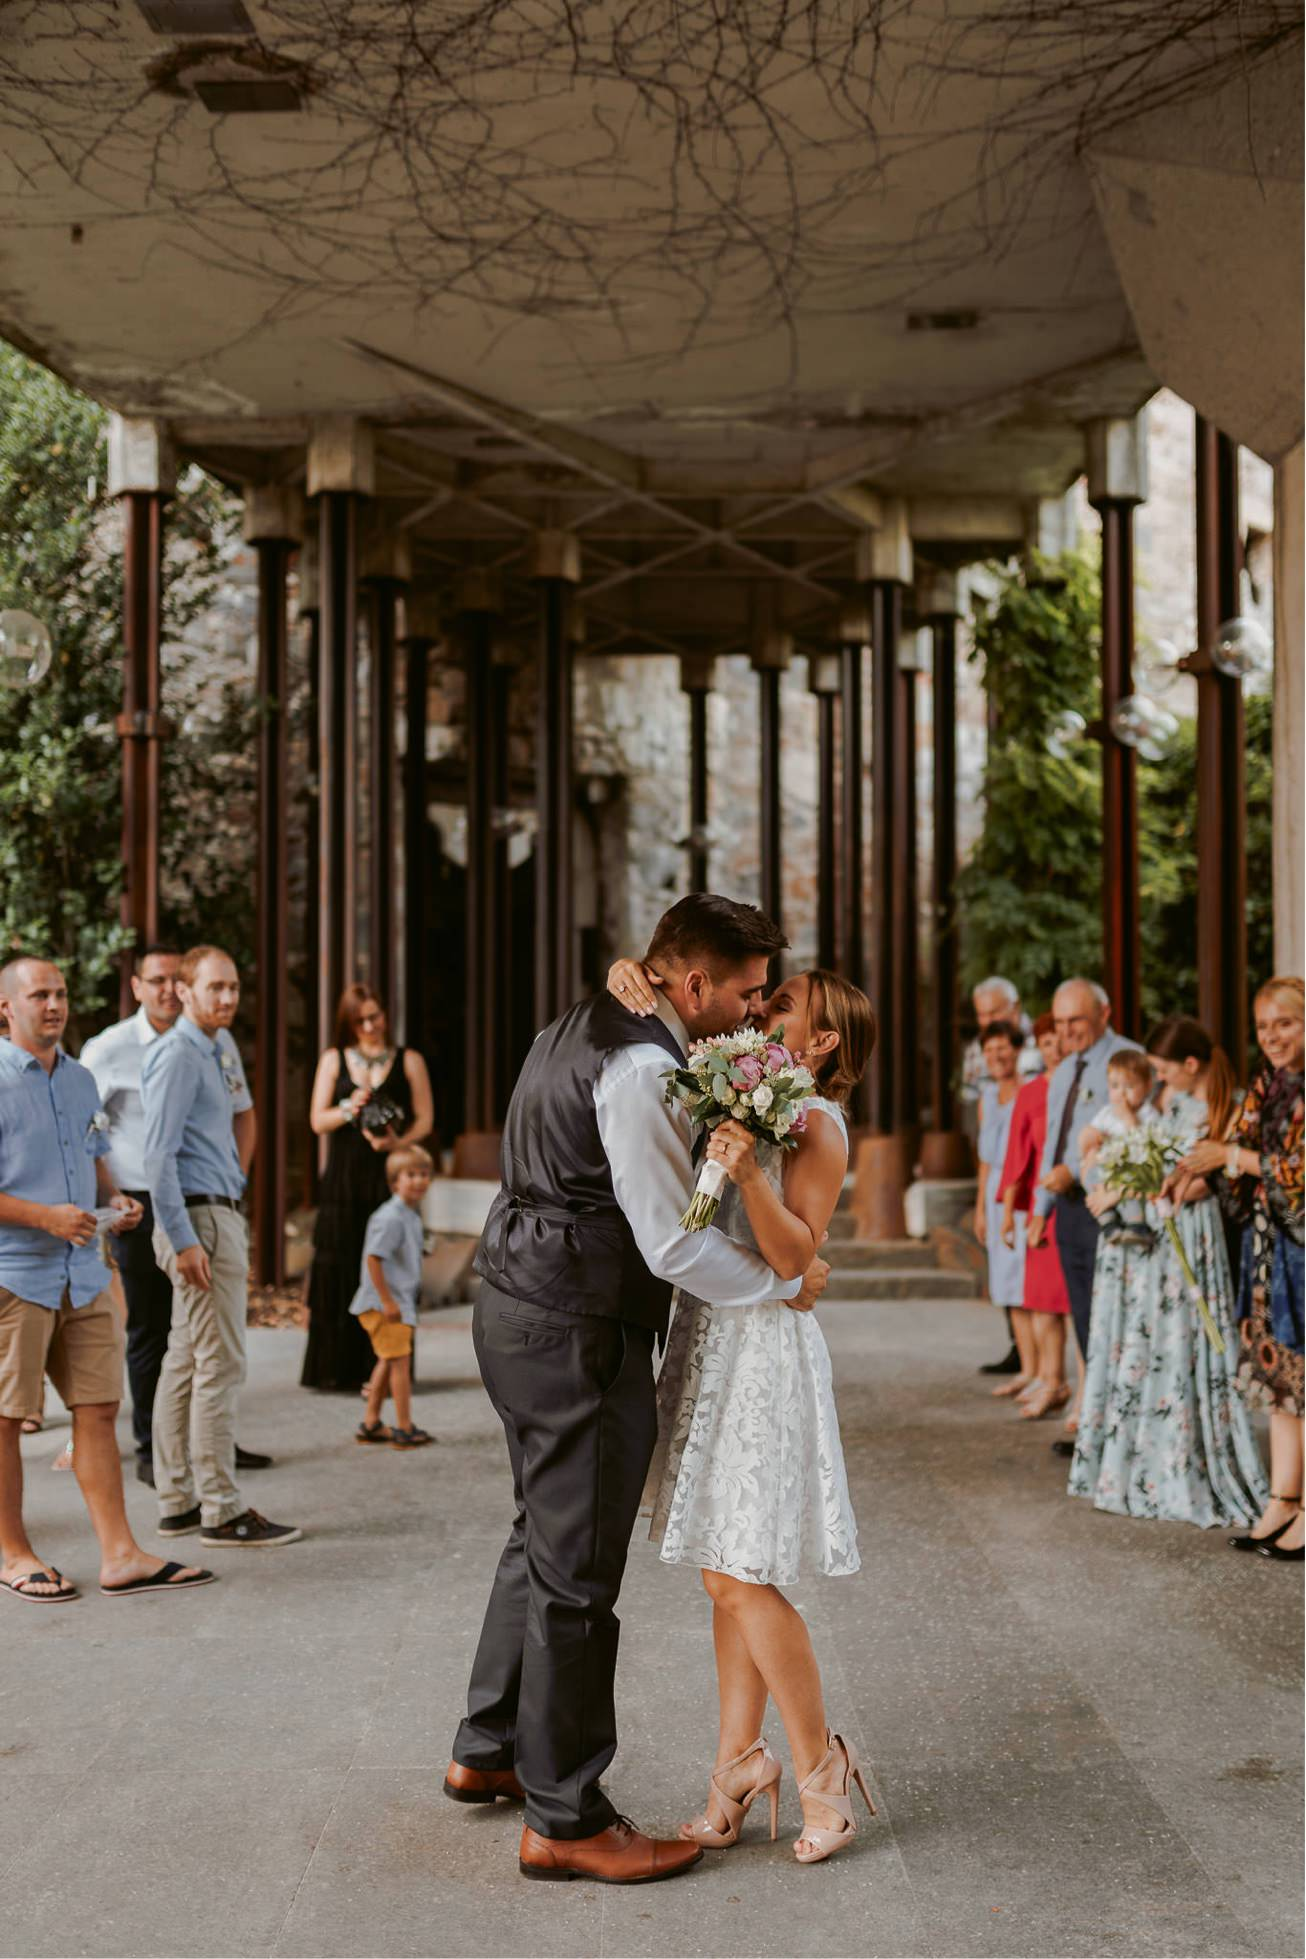 Ljubljana castle Dvor jezersek Wedding Photographer 40